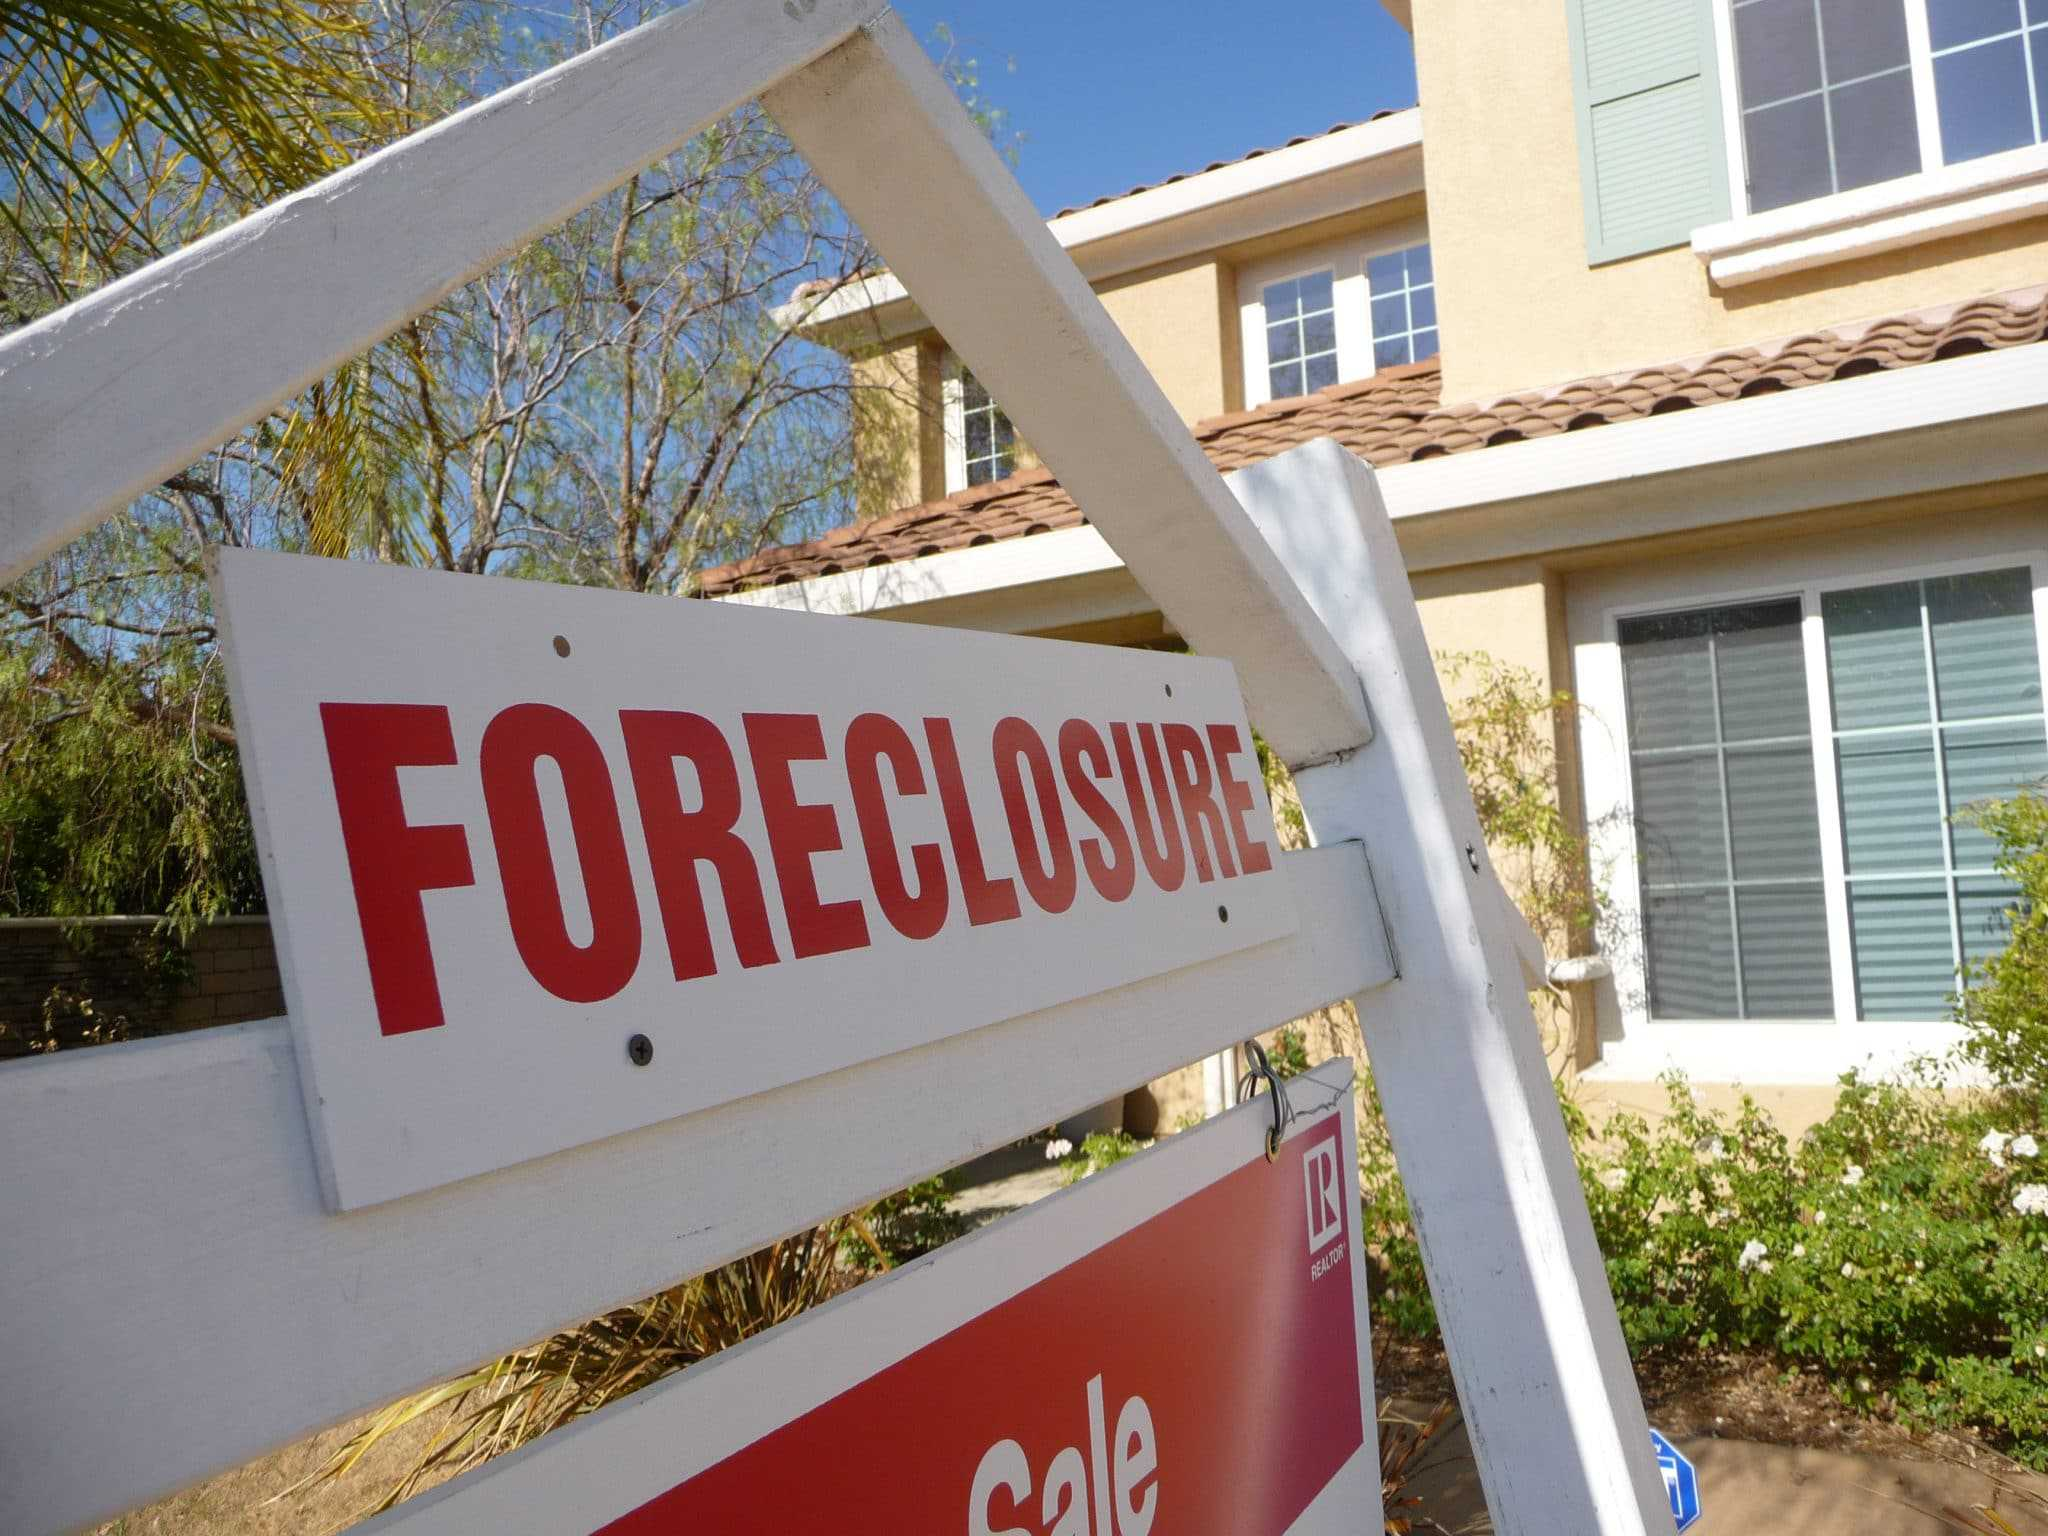 Council passes bill to fine certain owners of foreclosure properties - County owners of foreclosed properties must register the purchase or face a fine. Photo from Wikimedia Commons.